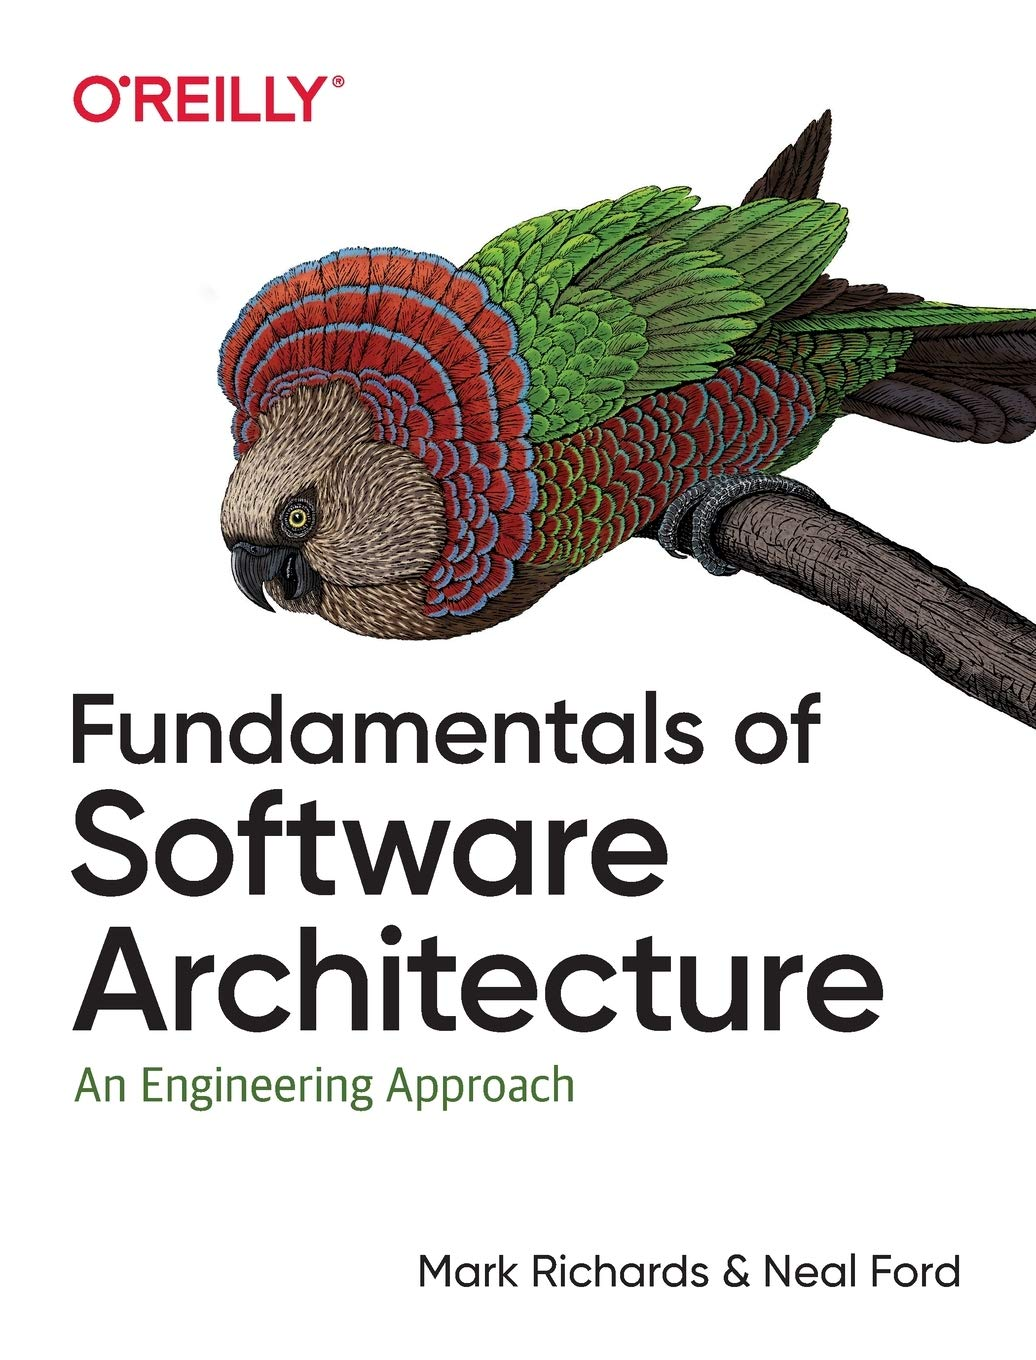 Image OfFundamentals Of Software Architecture: An Engineering Approach. A Comprehensive Guide To Patterns, Characteristics, And Be...